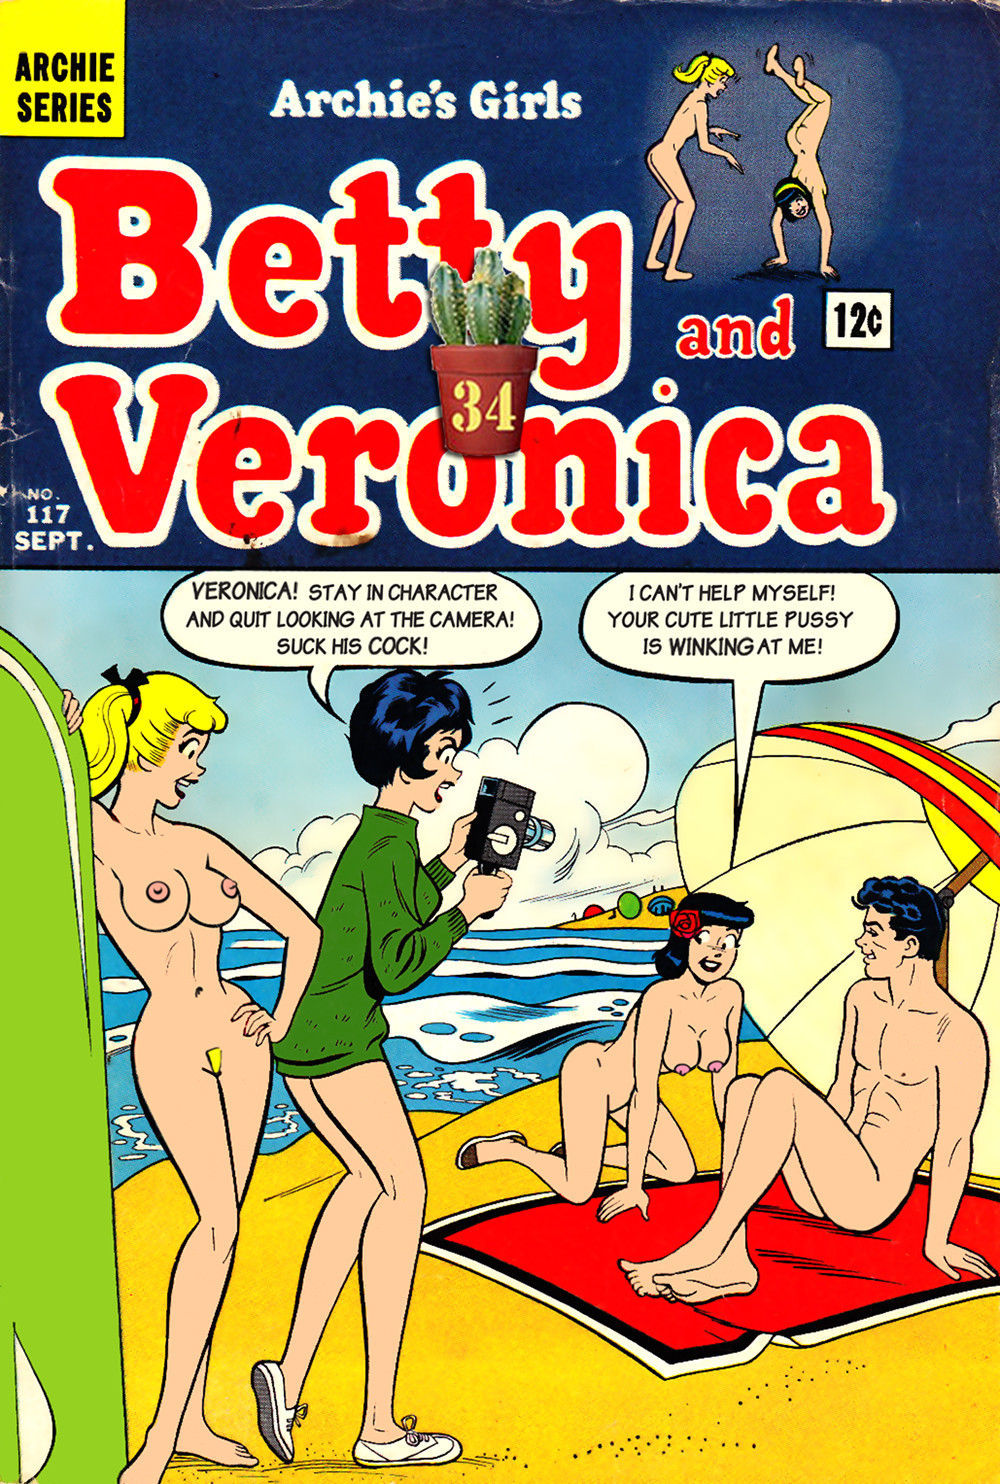 amateurs-demi-veronica-naked-from-archie-ass-and-tits